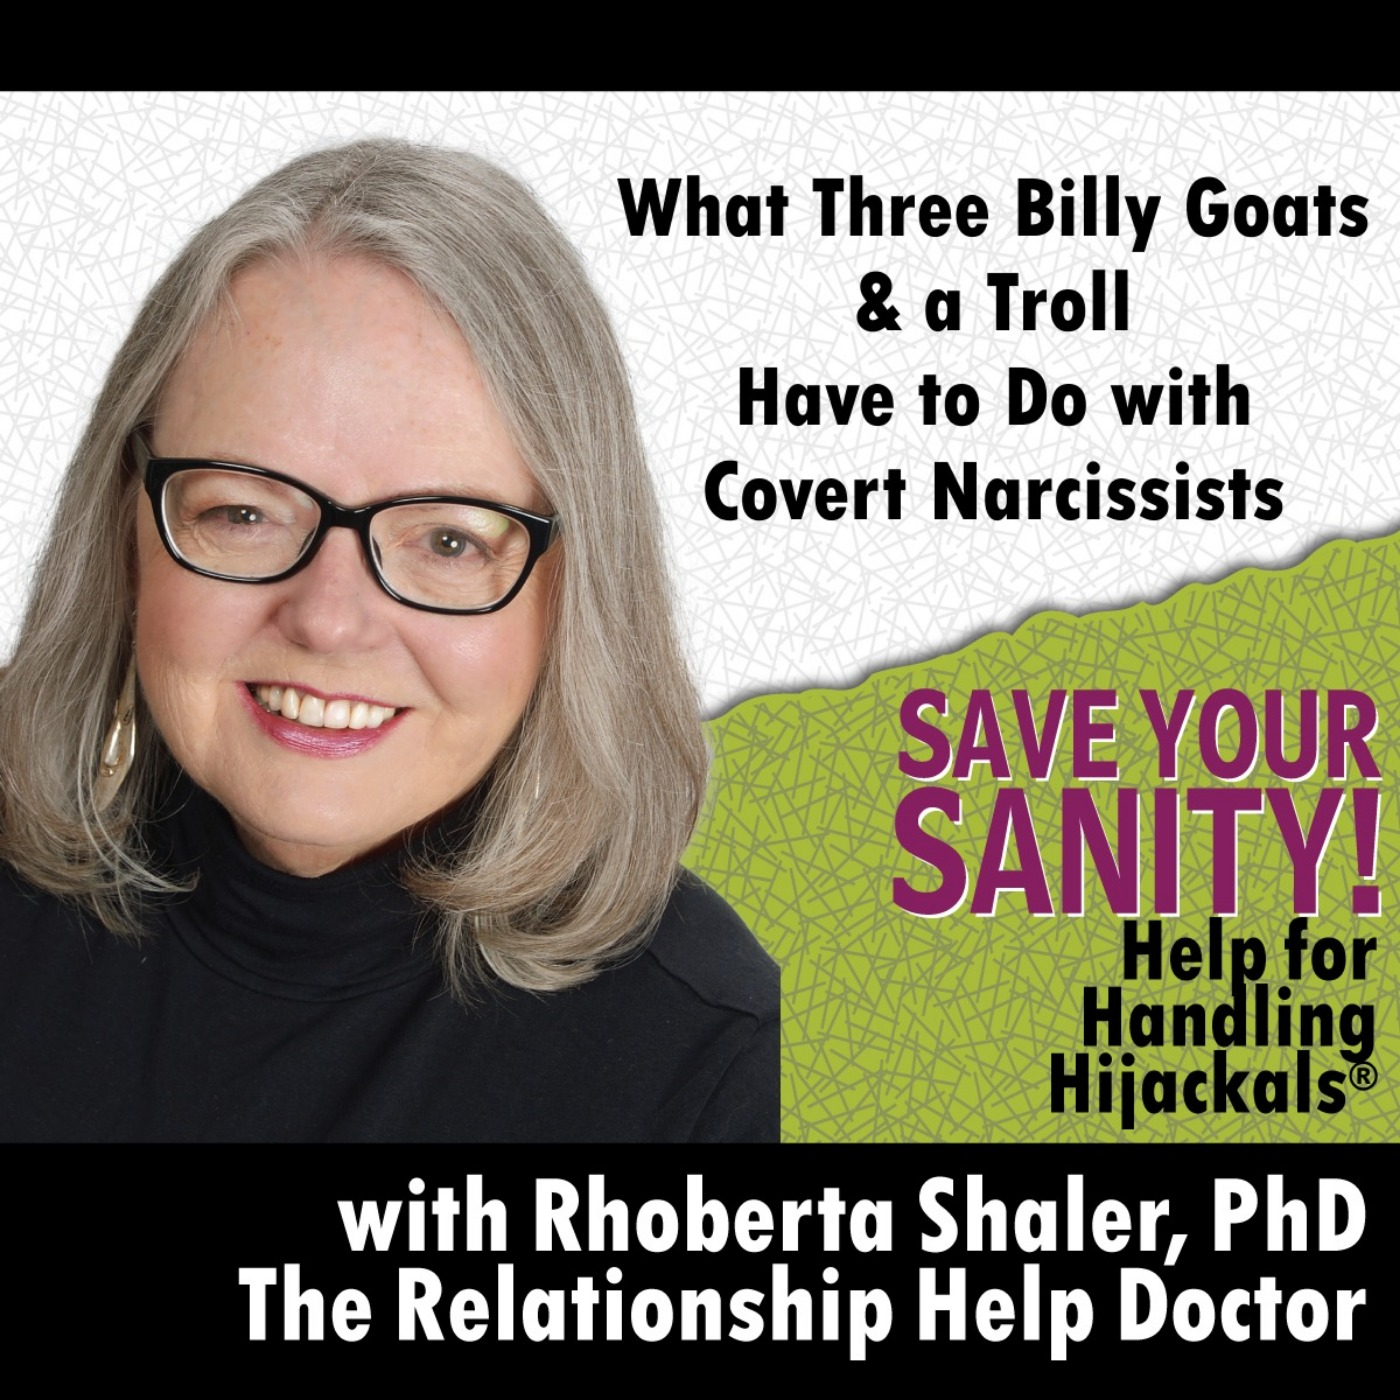 What Three Billy Goats & a Troll Have to Do with Covert Narcissists  Dr. Rhoberta Shaler